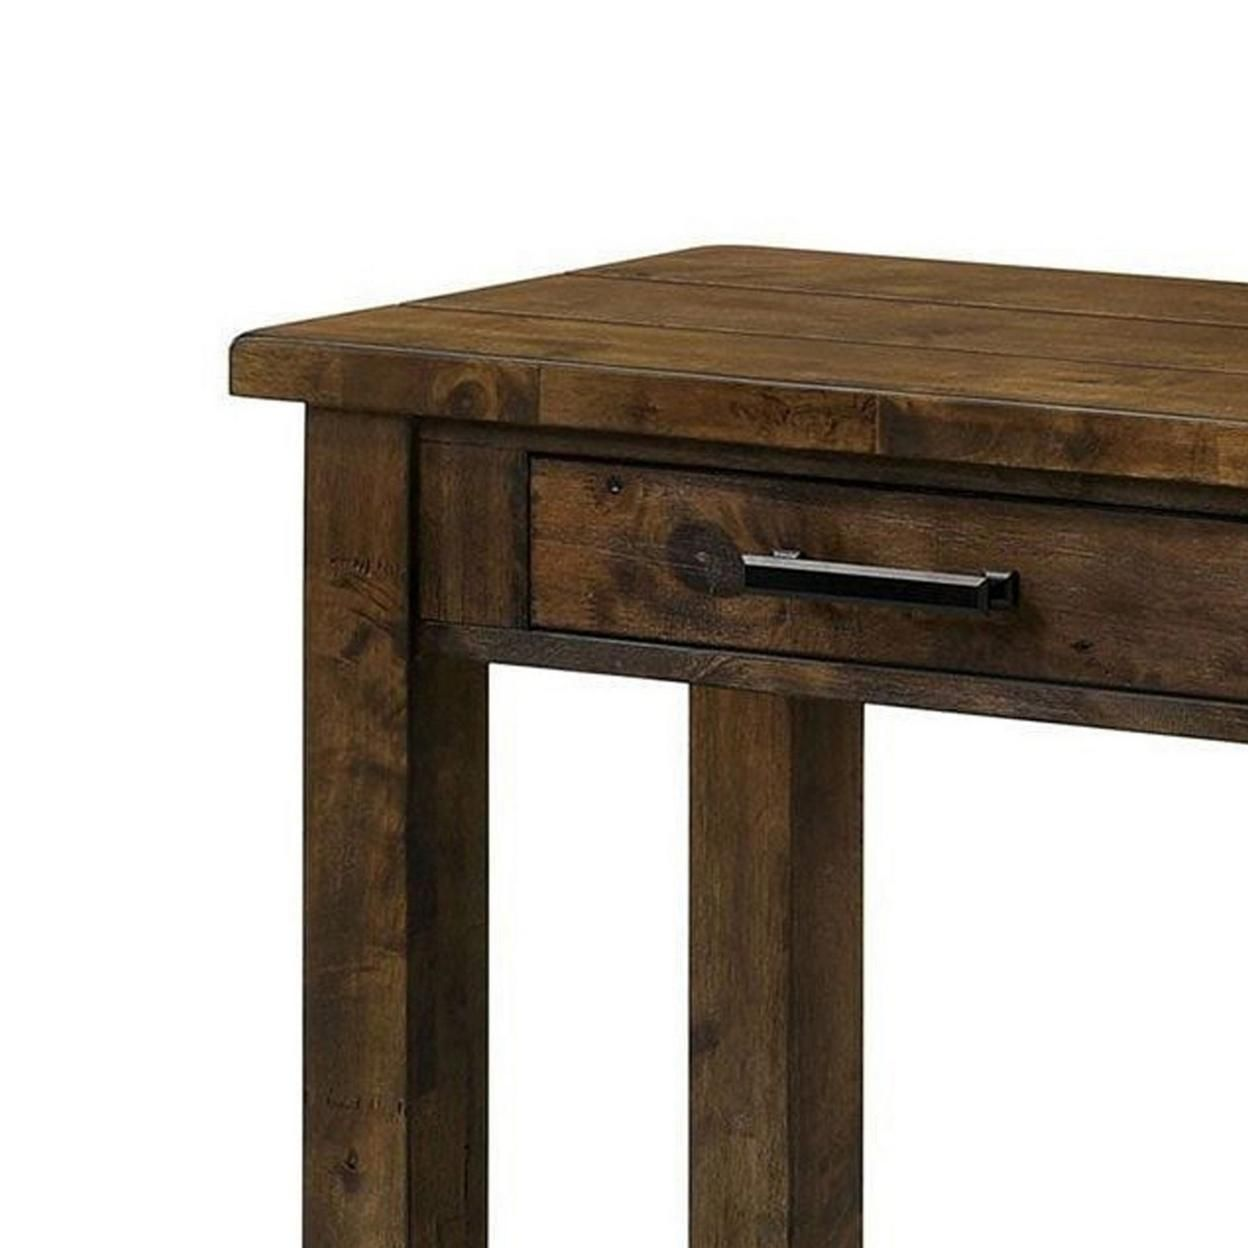 Saltoro Sherpi 51 Inches Sofa Table with 2 Drawers and Open Shelf, Rustic Brown